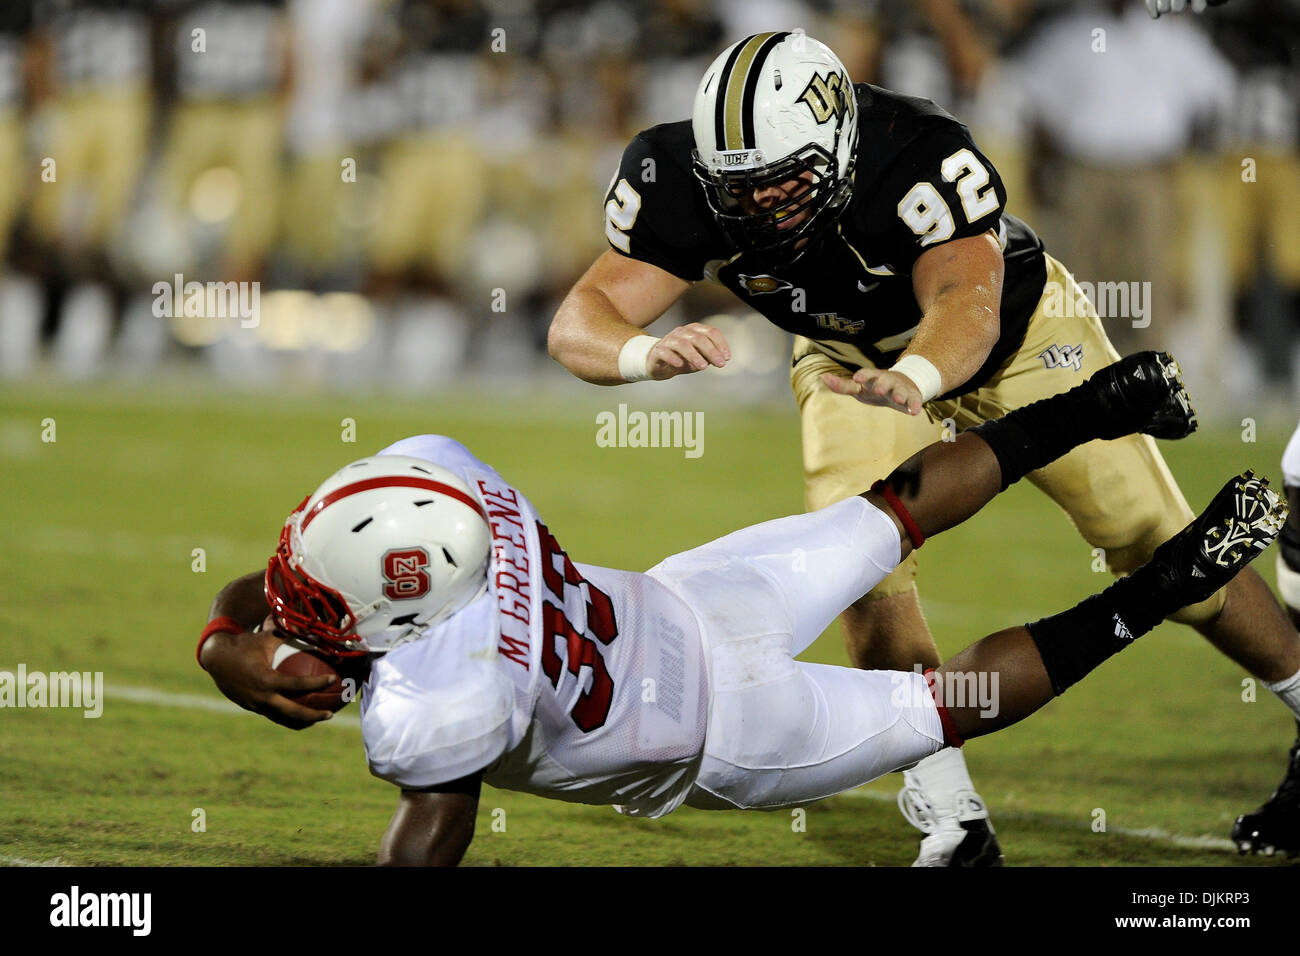 Sept. 11, 2010 - Orlando, Florida, United States of America - North Carolina State Wolfpack running back Mustafa Greene (33) dives ahead past UCF Knights defensive lineman Barry Snider (92) during the game at Brighthouse Arena in Orlando,   in which NC State defeated UCF 28-21. (Credit Image: © Brad Barr/Southcreek Global/ZUMApress.com) - Stock Image